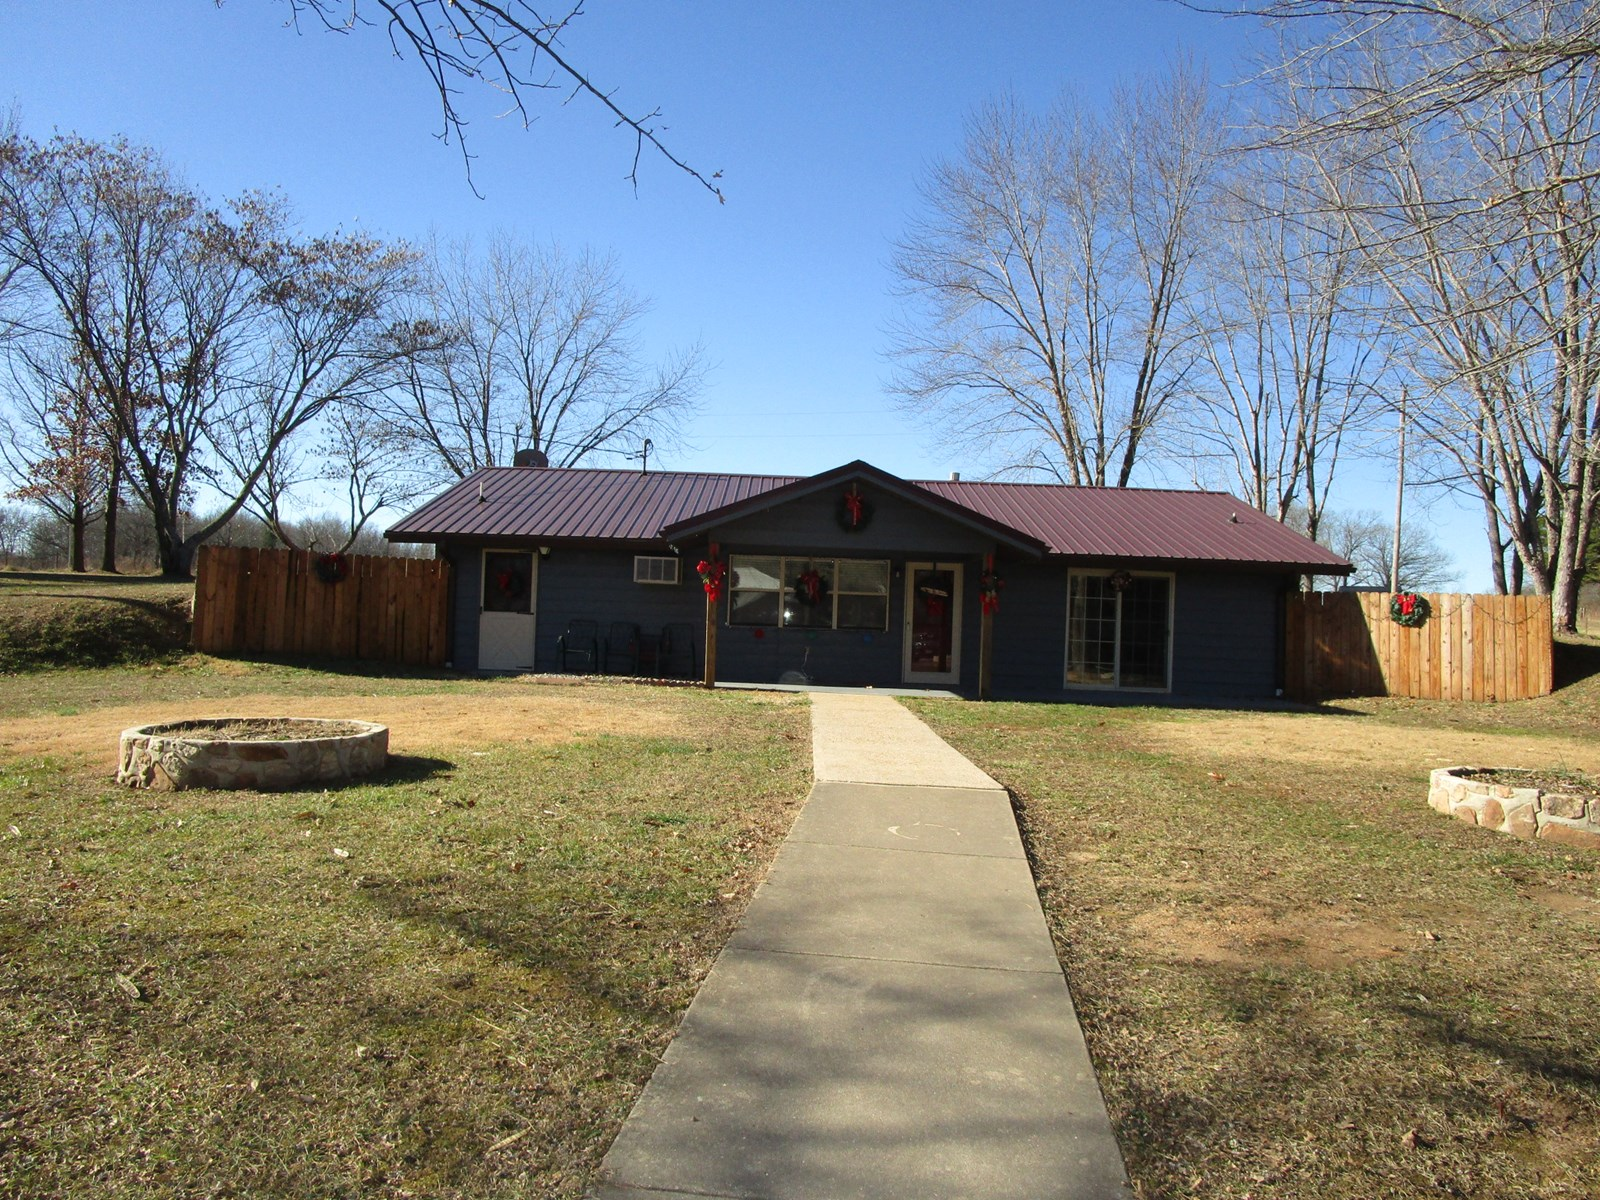 Home for Sale in Success Missouri